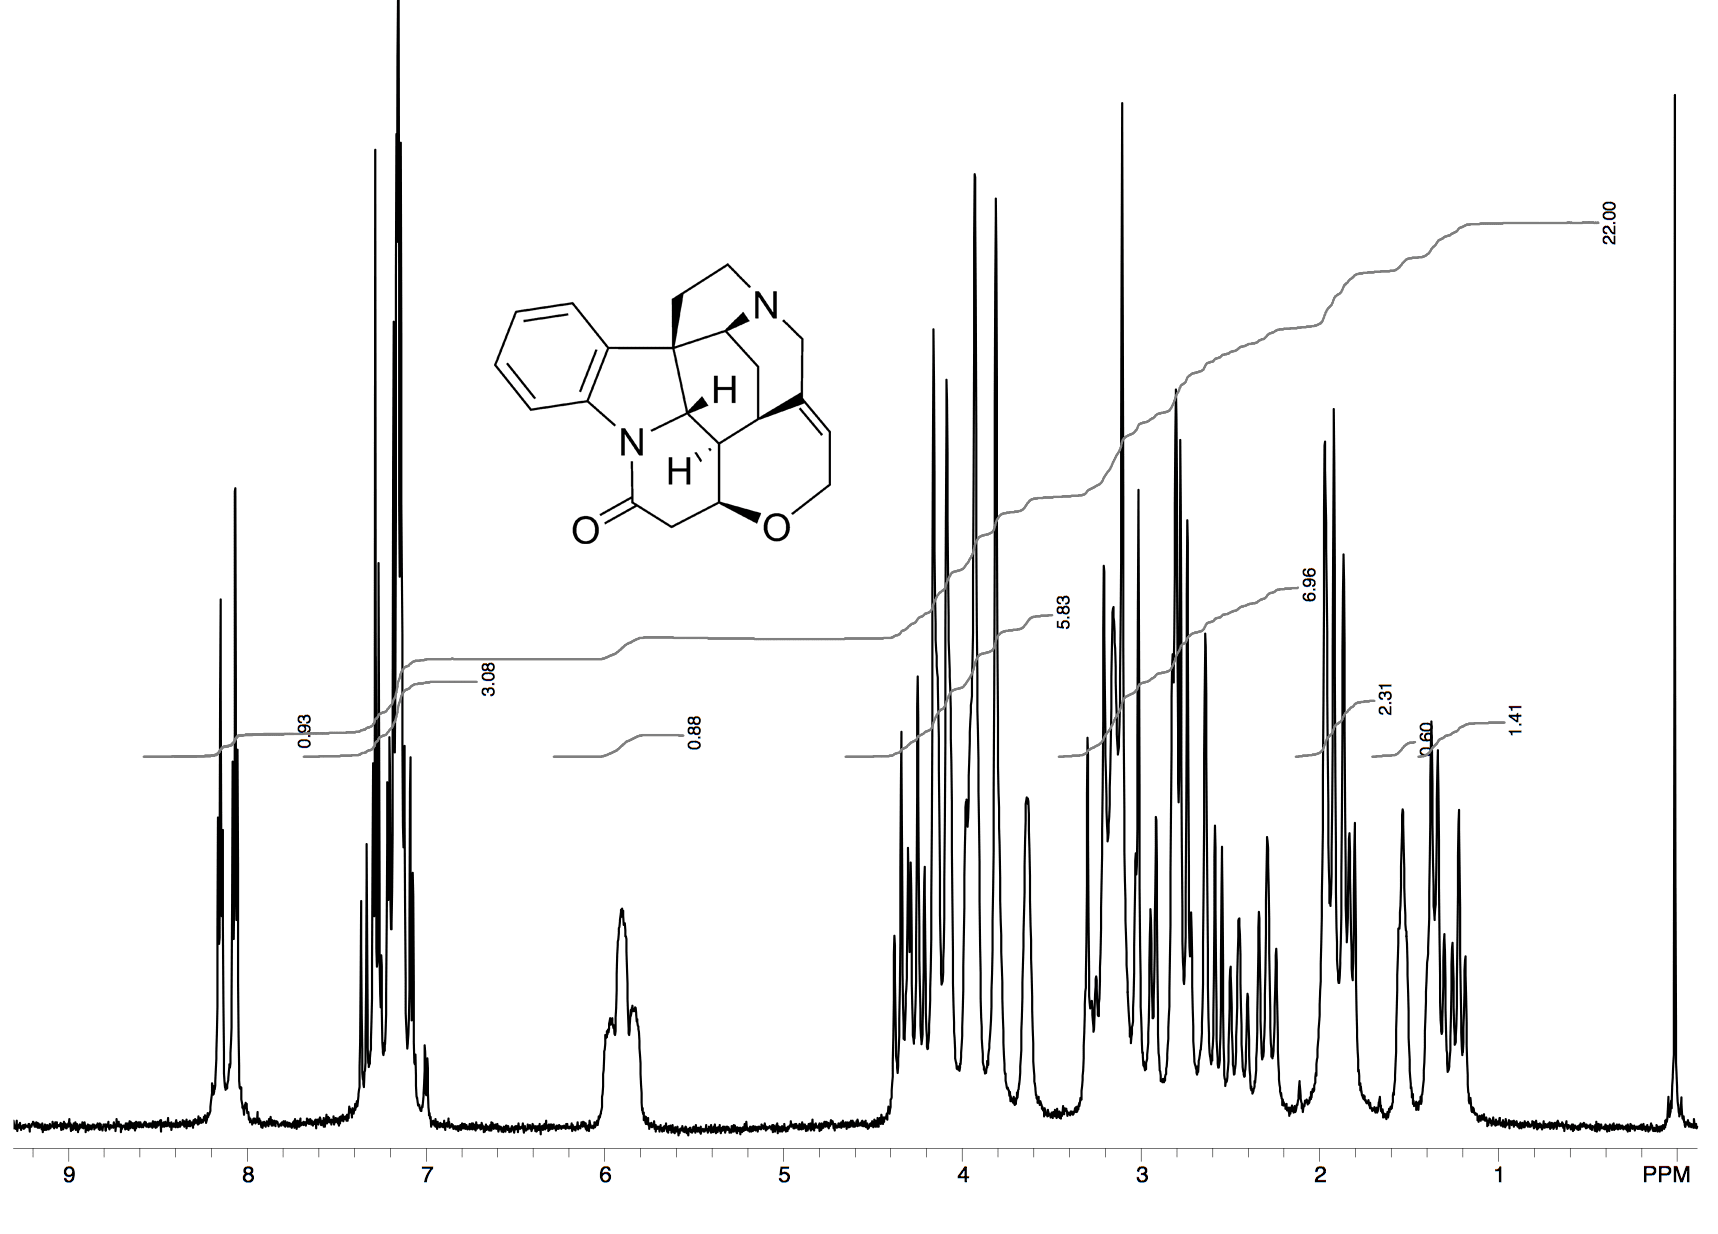 90 MHz 1H NMR spectrum of strychnine